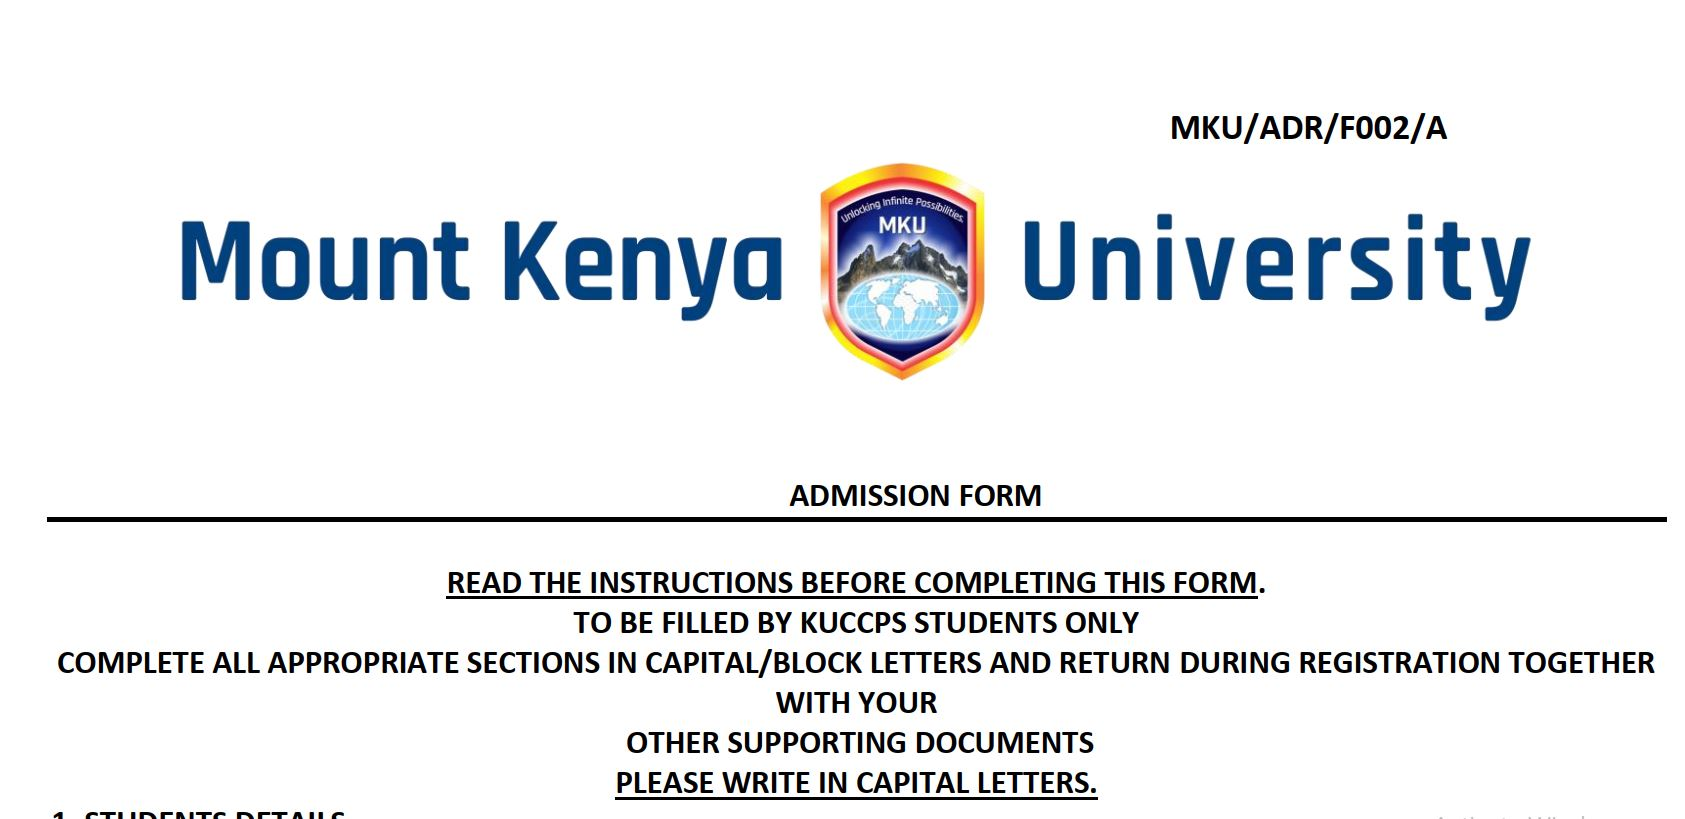 Mount Kenya University (mku) admission letters for KUCCPS students, 2019 government Sponsored